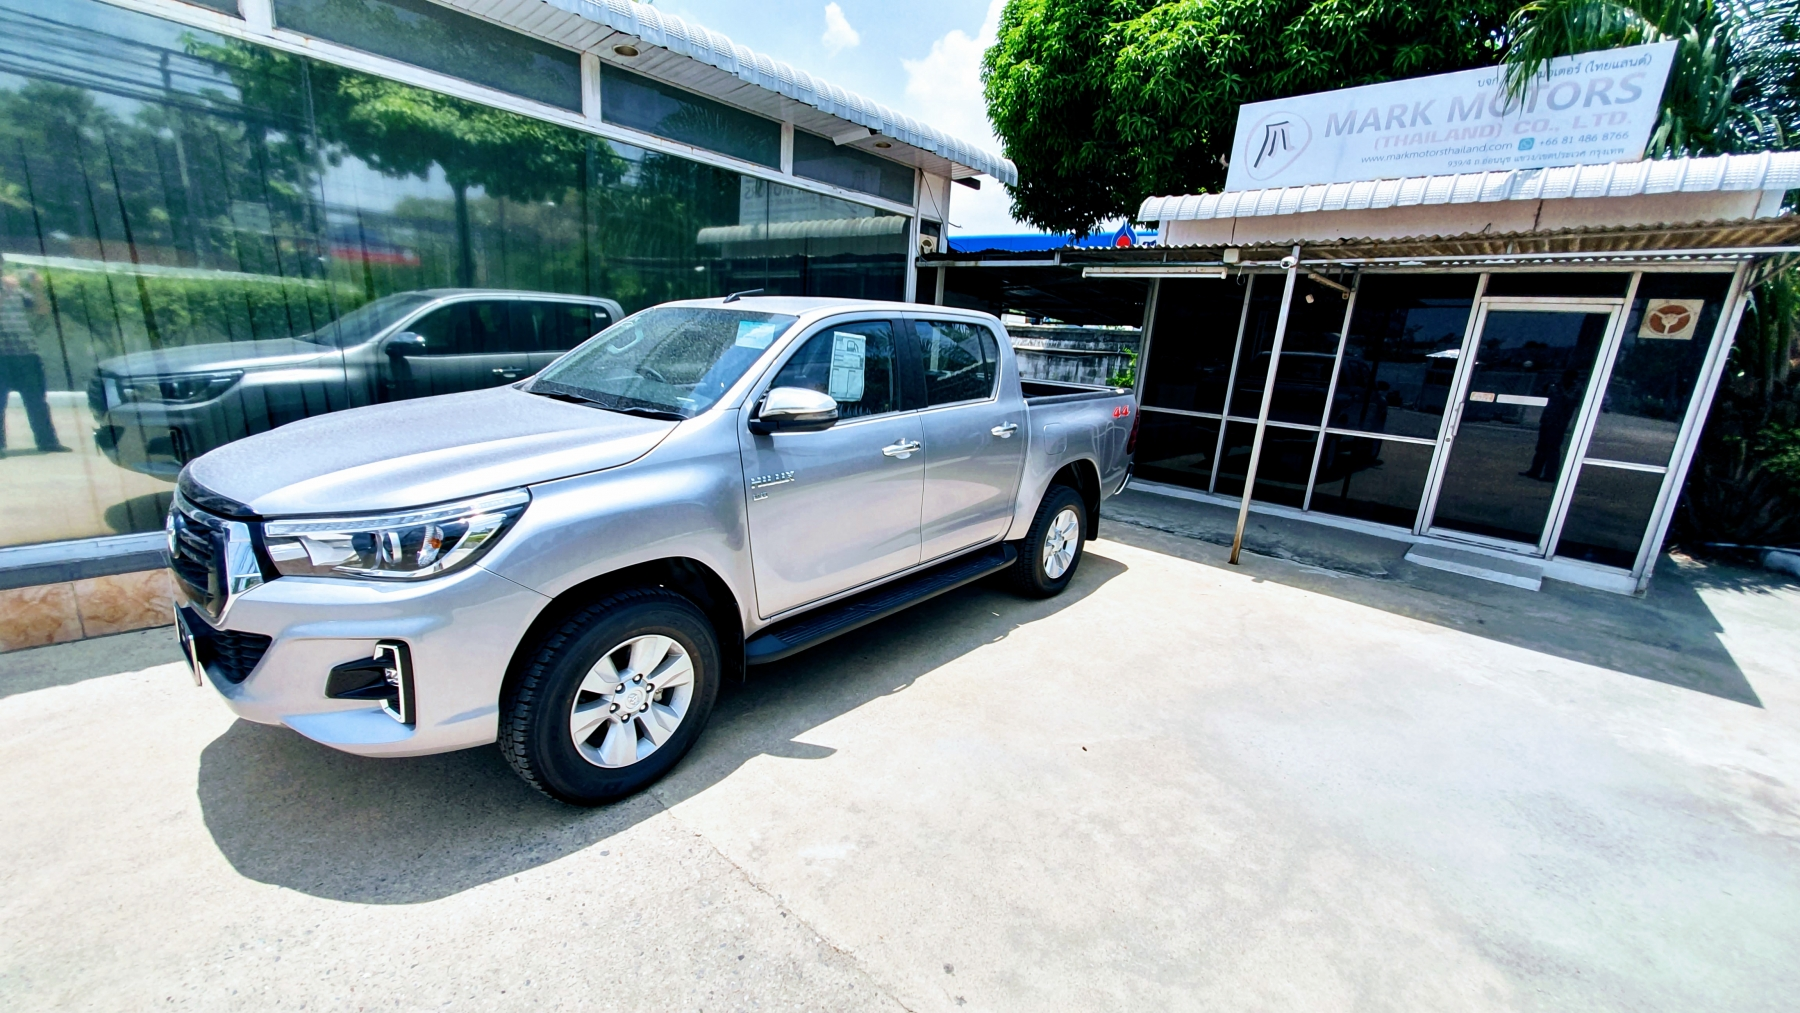 Mark Motors thailand- 2019 Toyota Revo 4x4 Double Cab